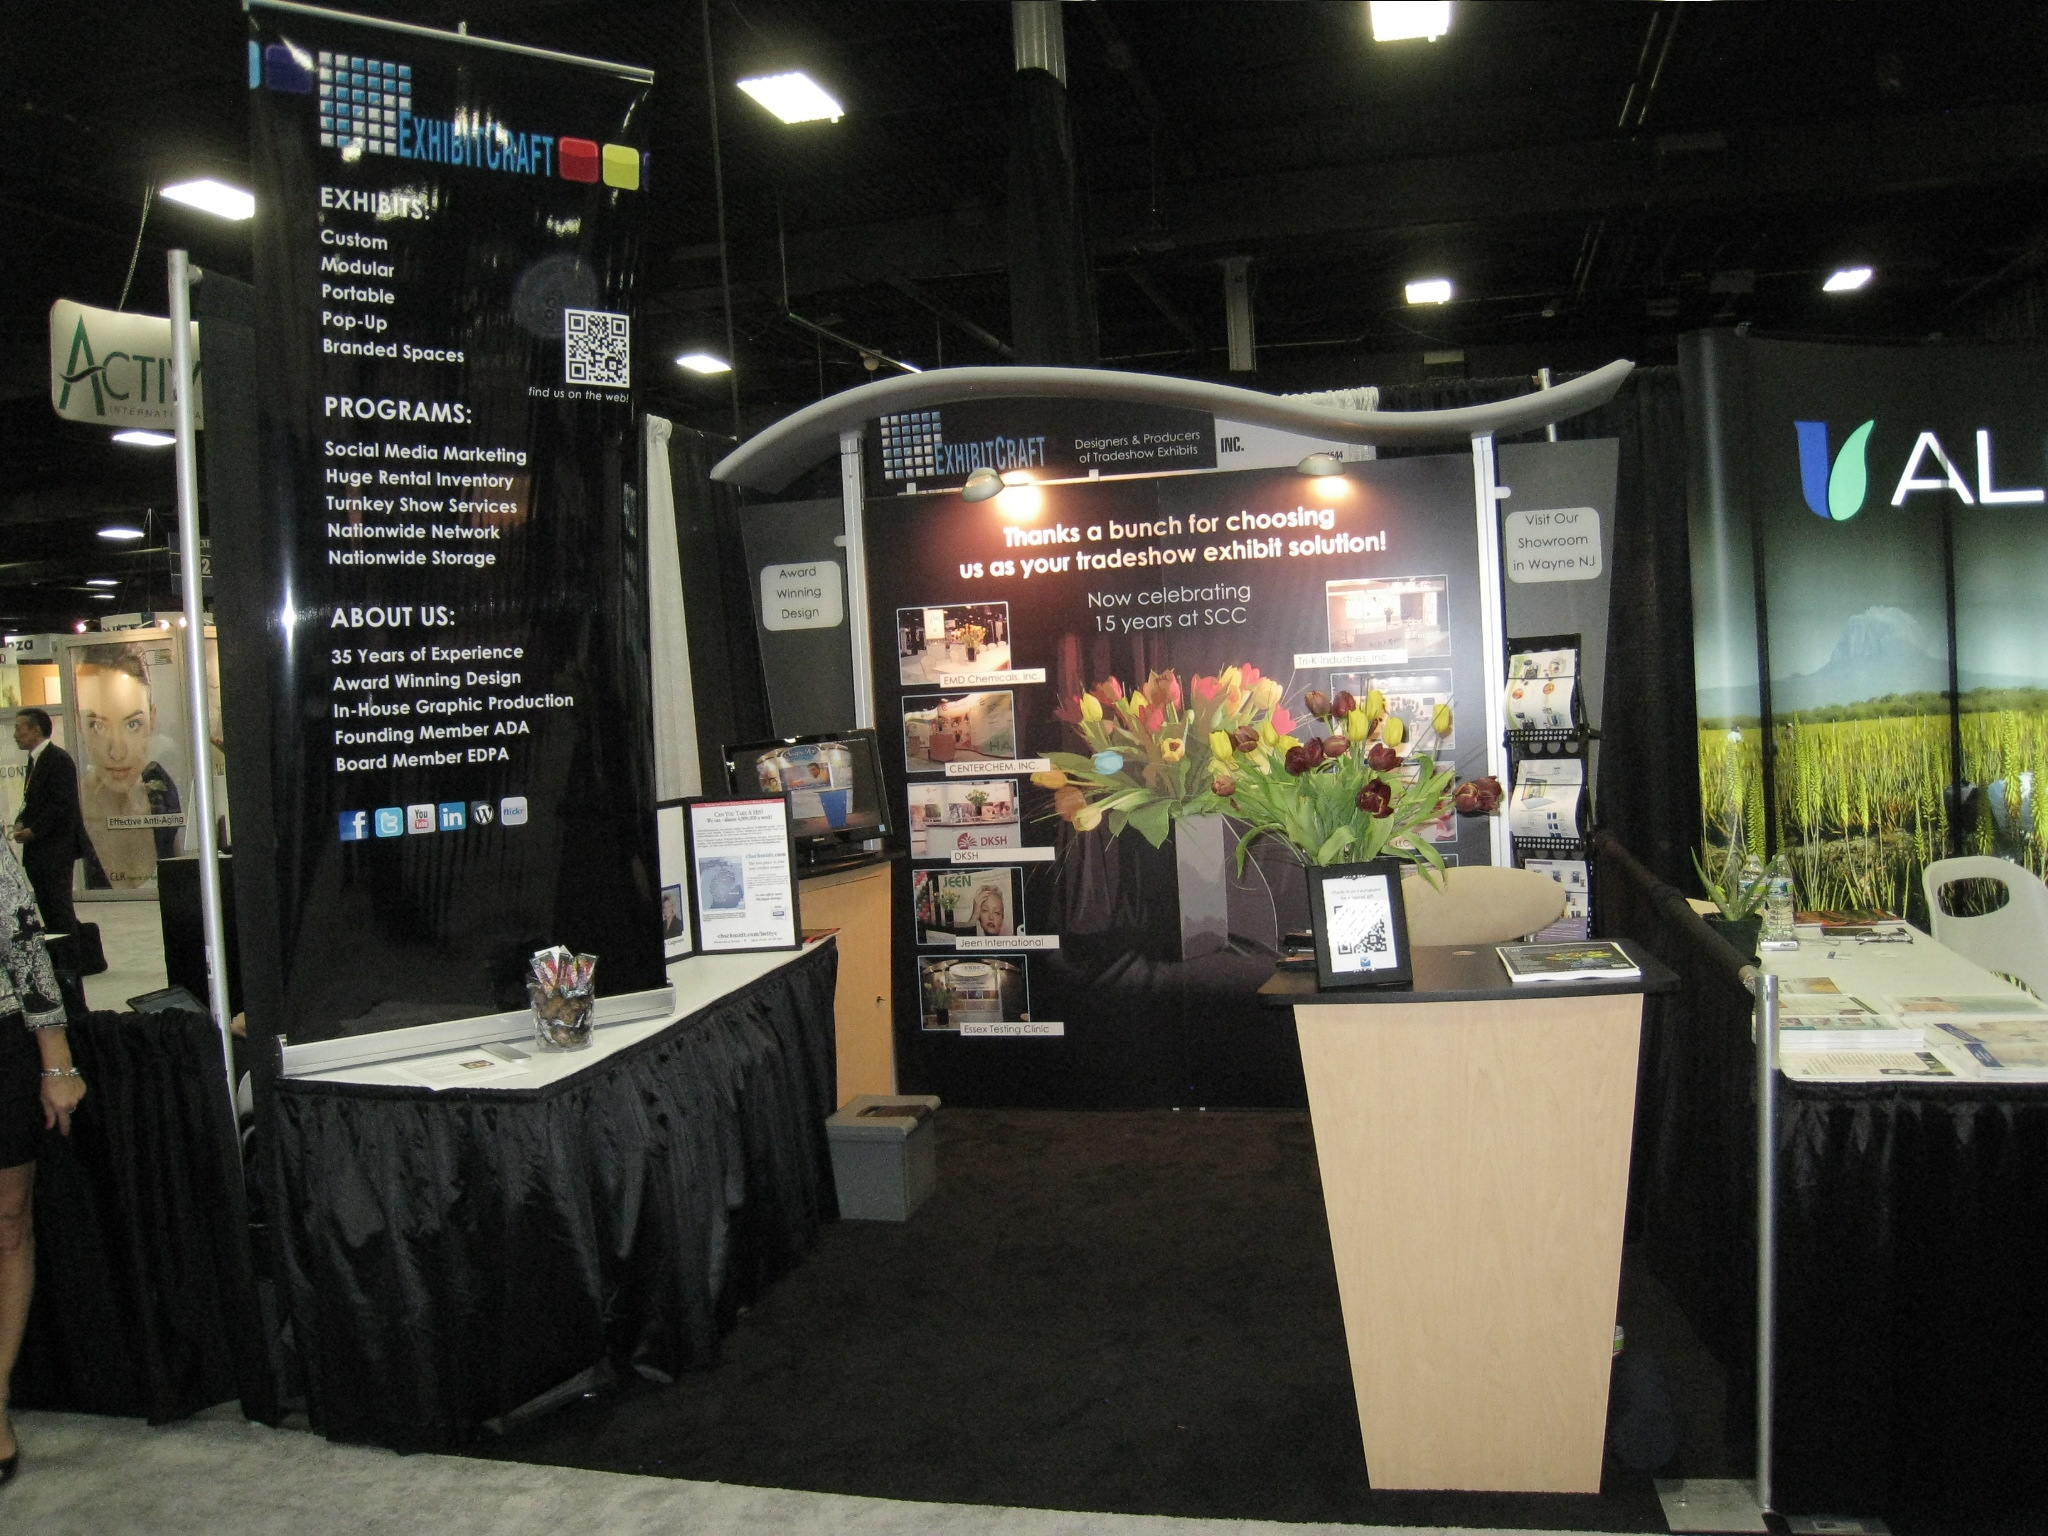 Nj Trade Show Booth : Celebrating years as a trade show exhibit solution at